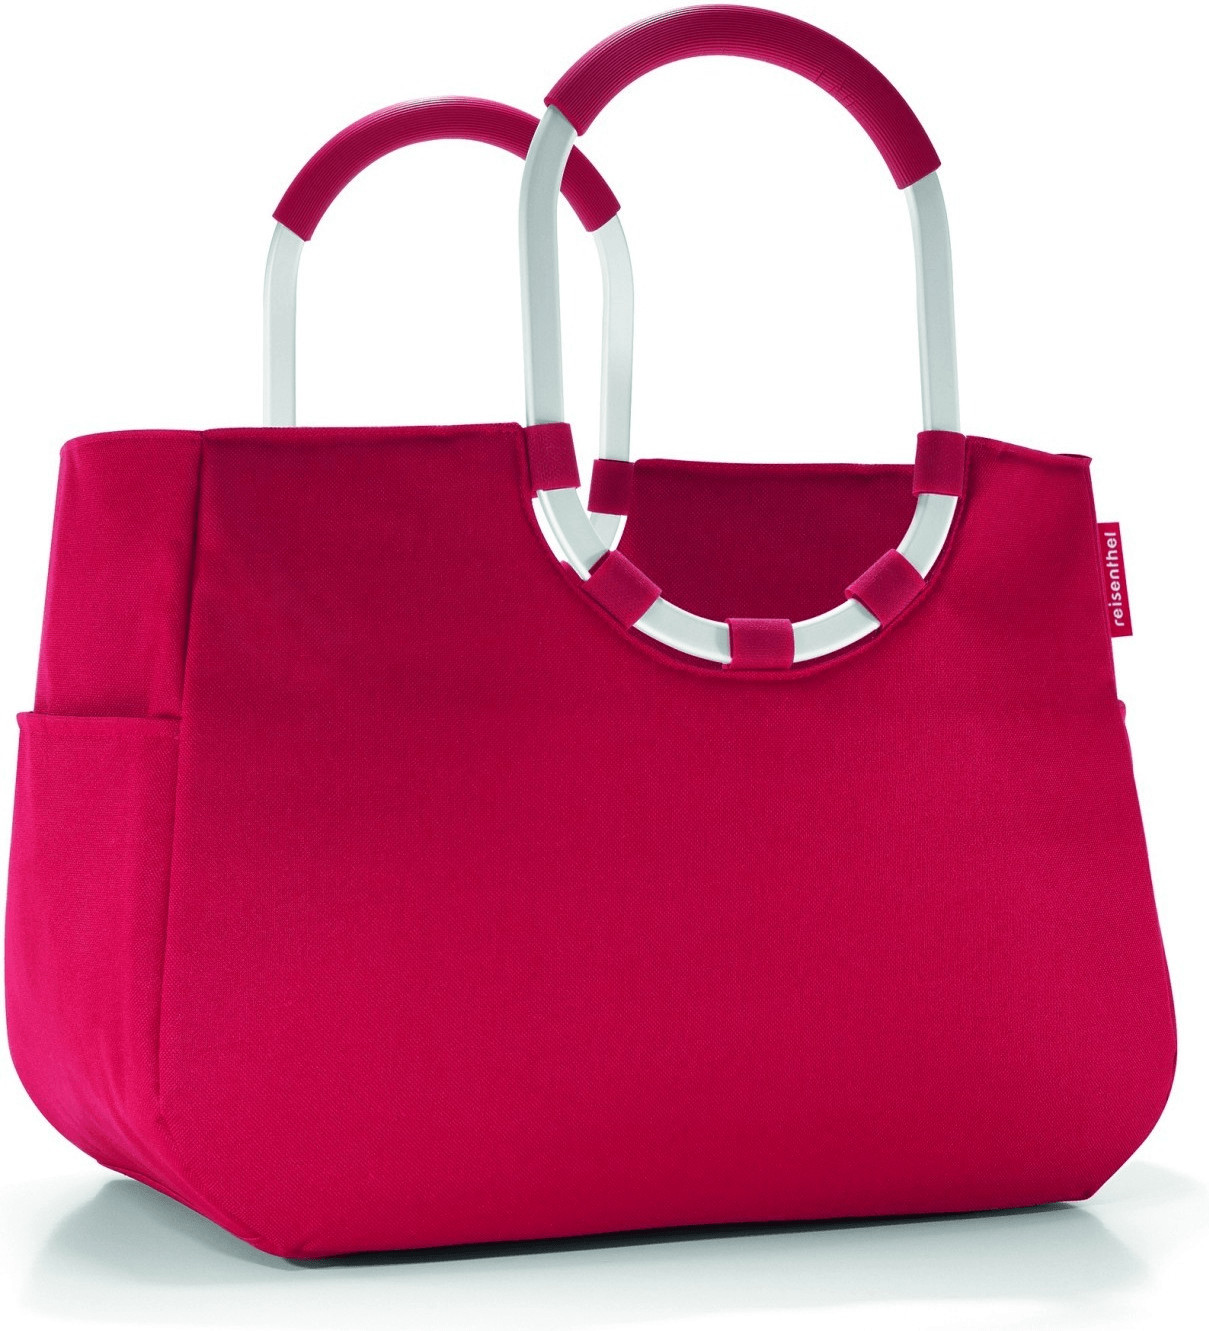 Reisenthel Loopshopper L red